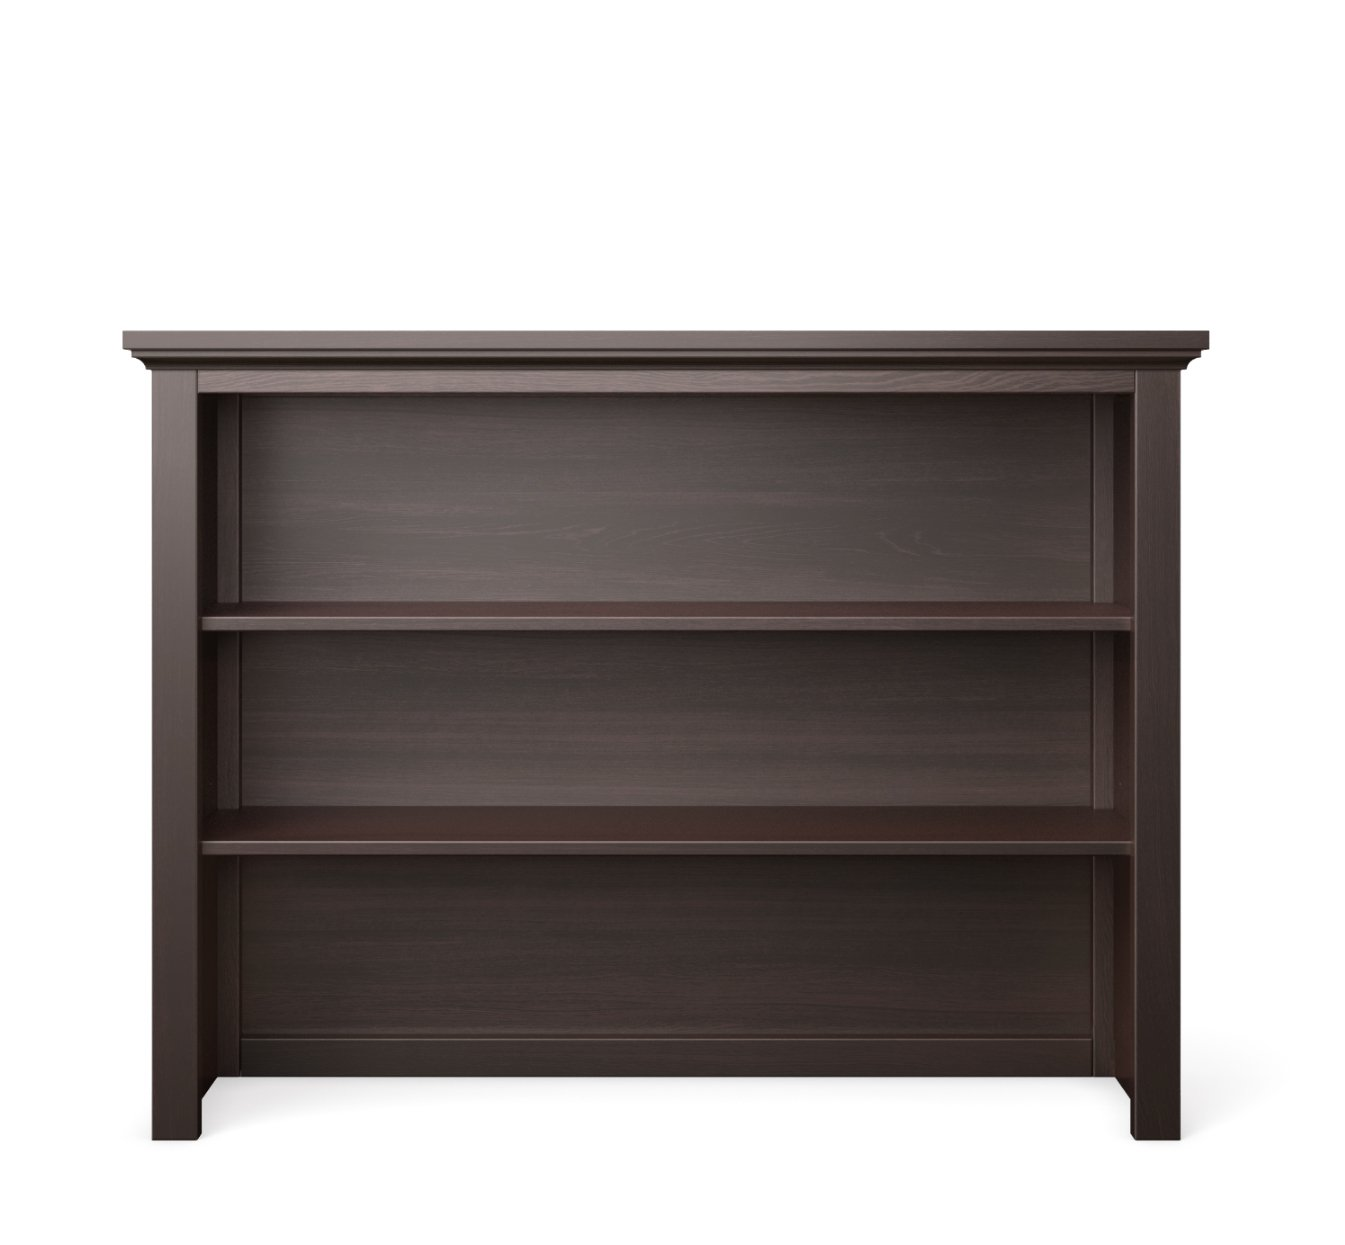 Silva Furniture Hutch in Cherry